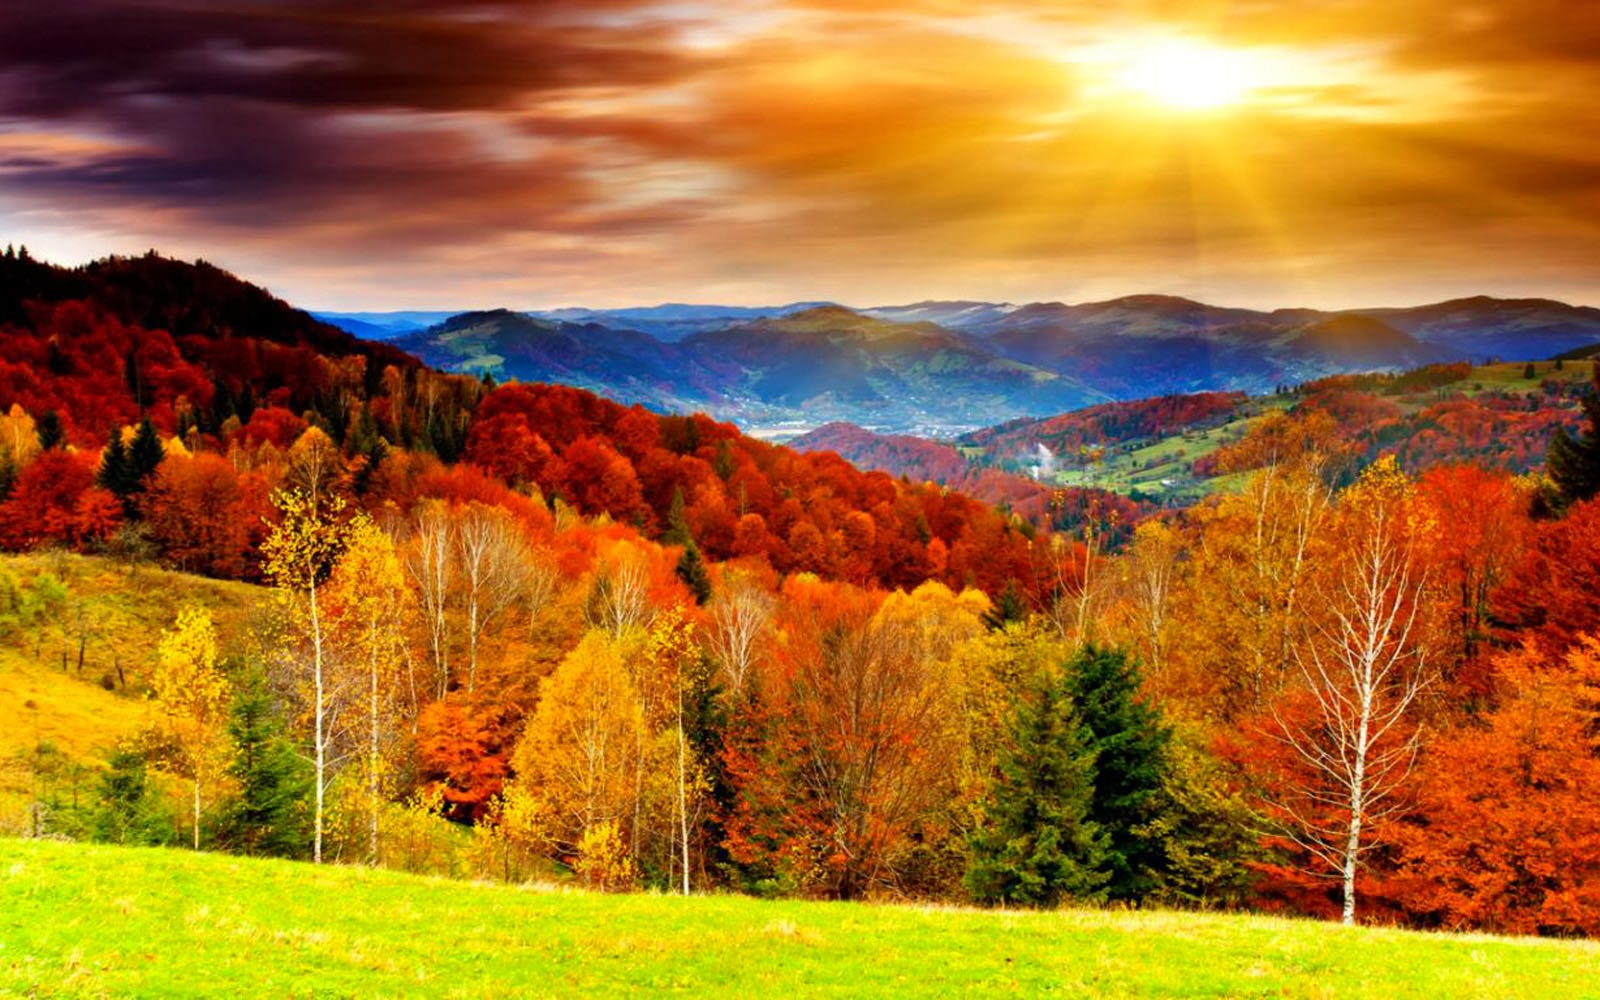 Autumn Scenery Desktop Wallpapers